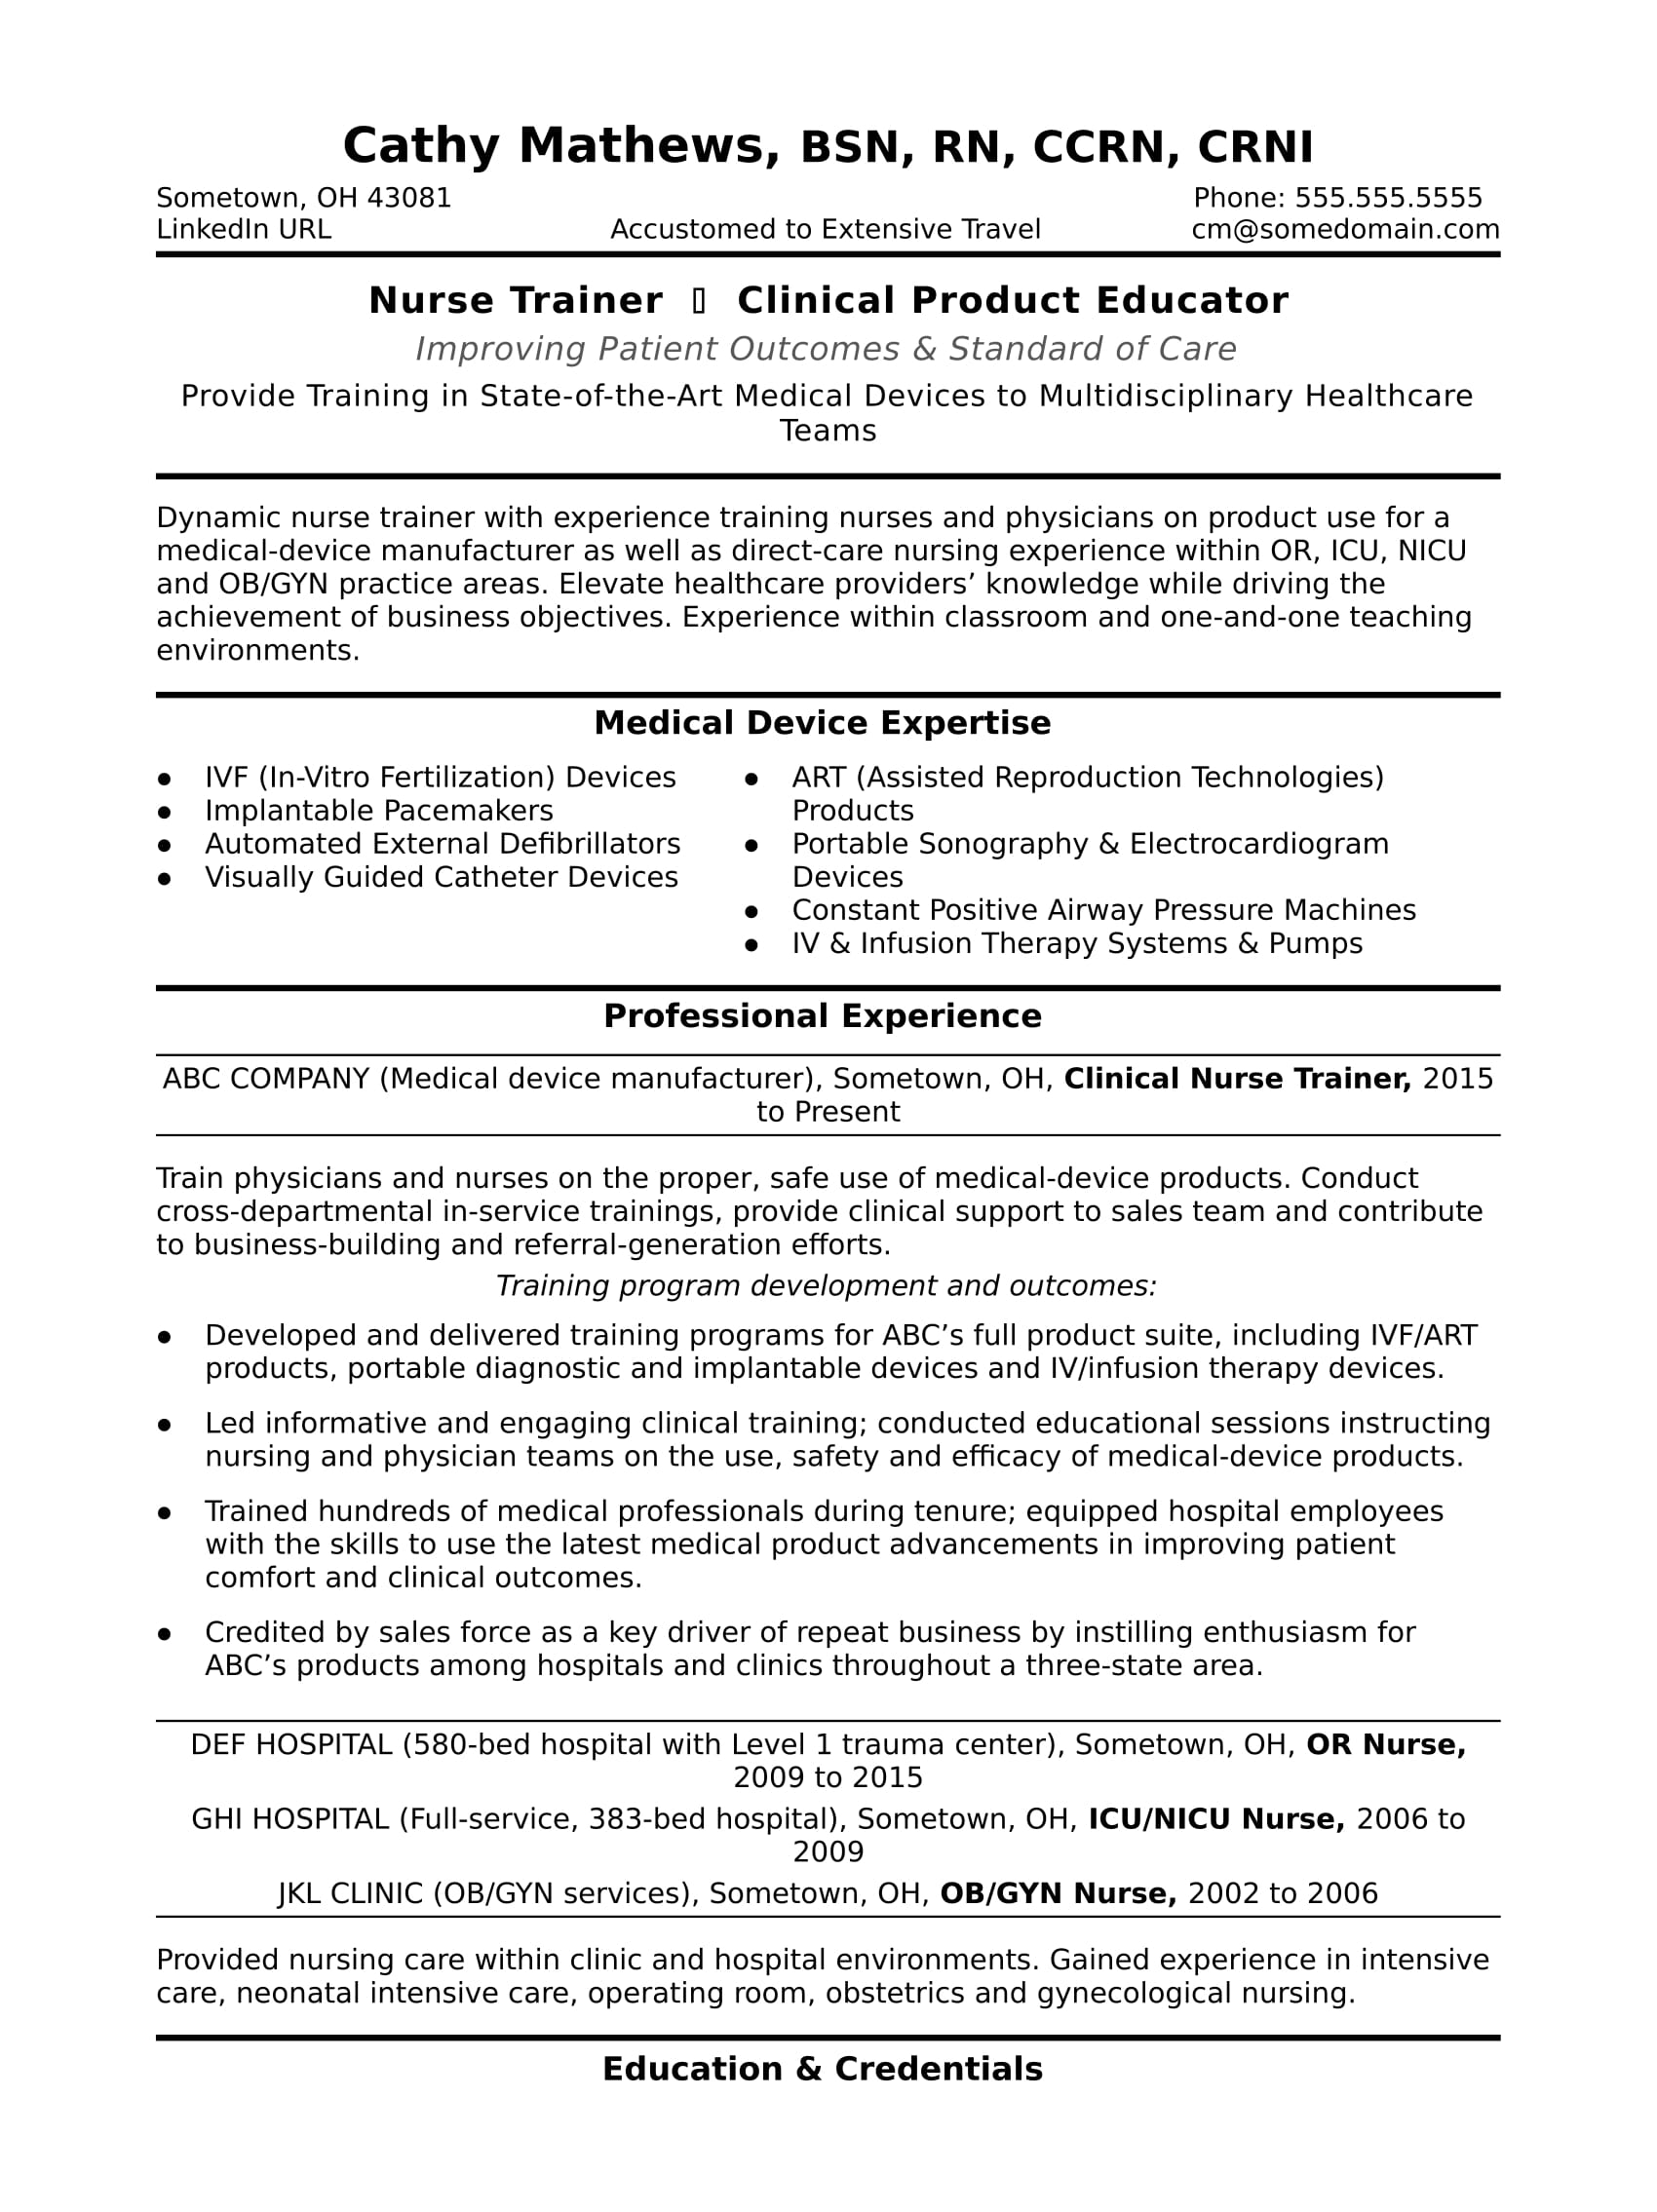 Diversity Meaning Workplace >> Nurse Trainer Resume Sample | Monster.com